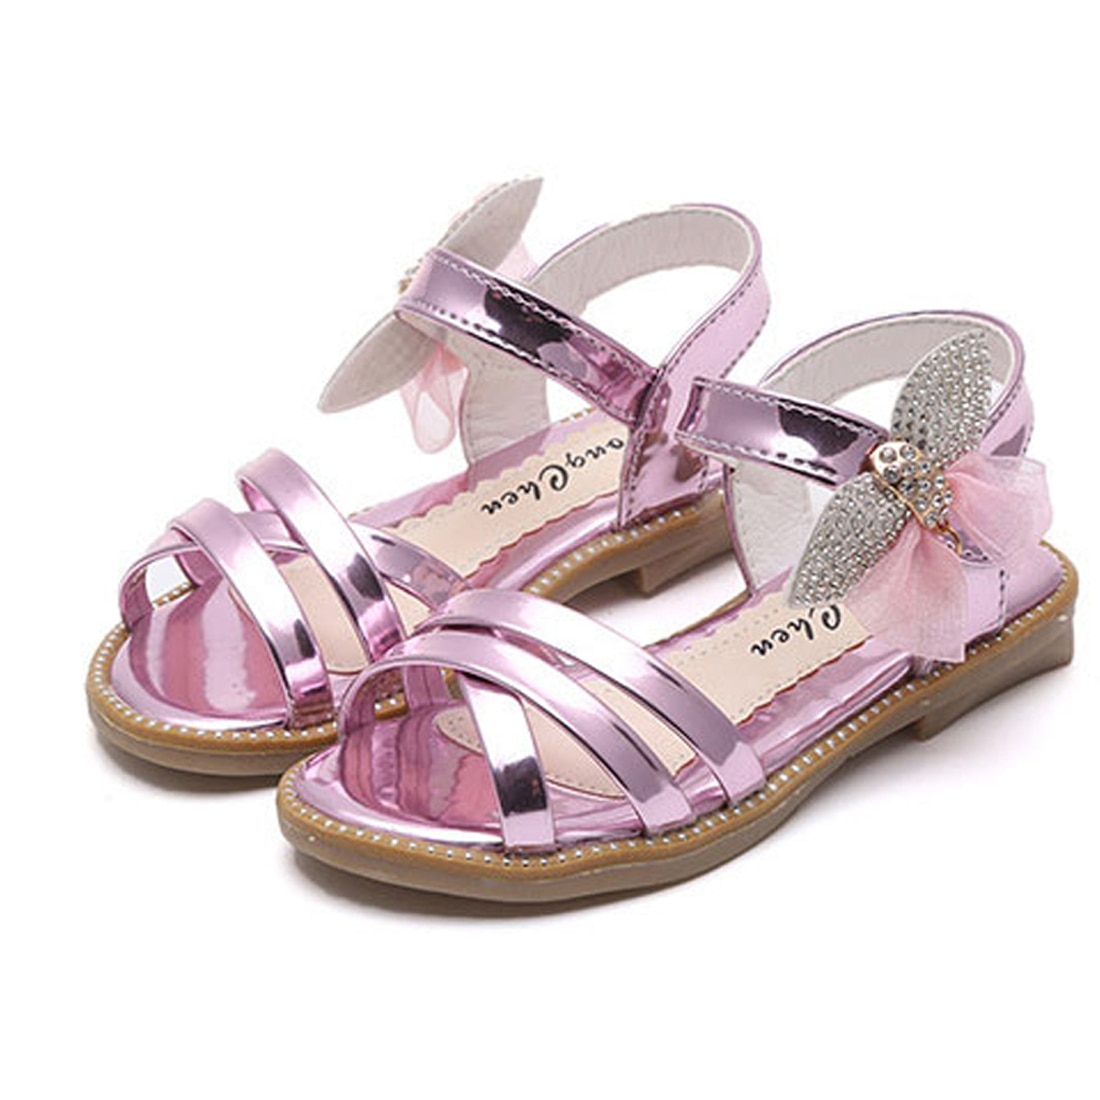 New Crystal Sandals Girls Shiny Summer Shoes Children Beach Sandals For Girls Princess Shoes Kids We